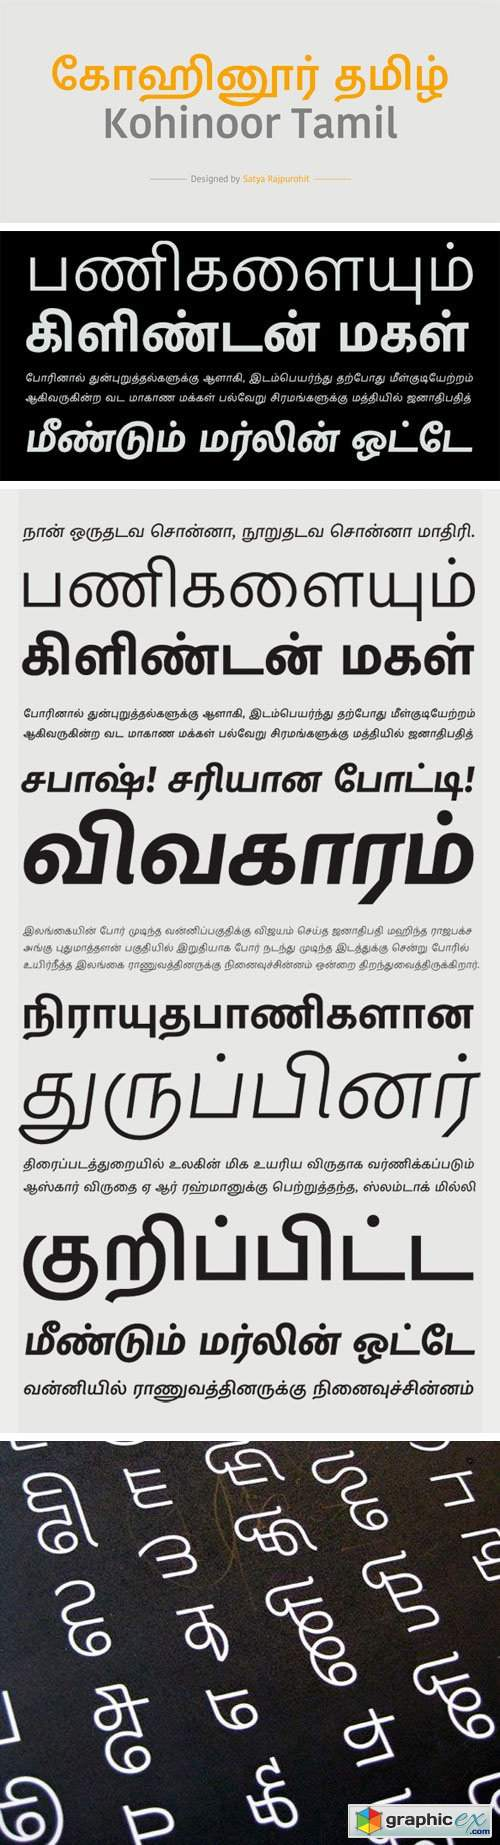 Kohinoor Tamil Font Family » Free Download Vector Stock